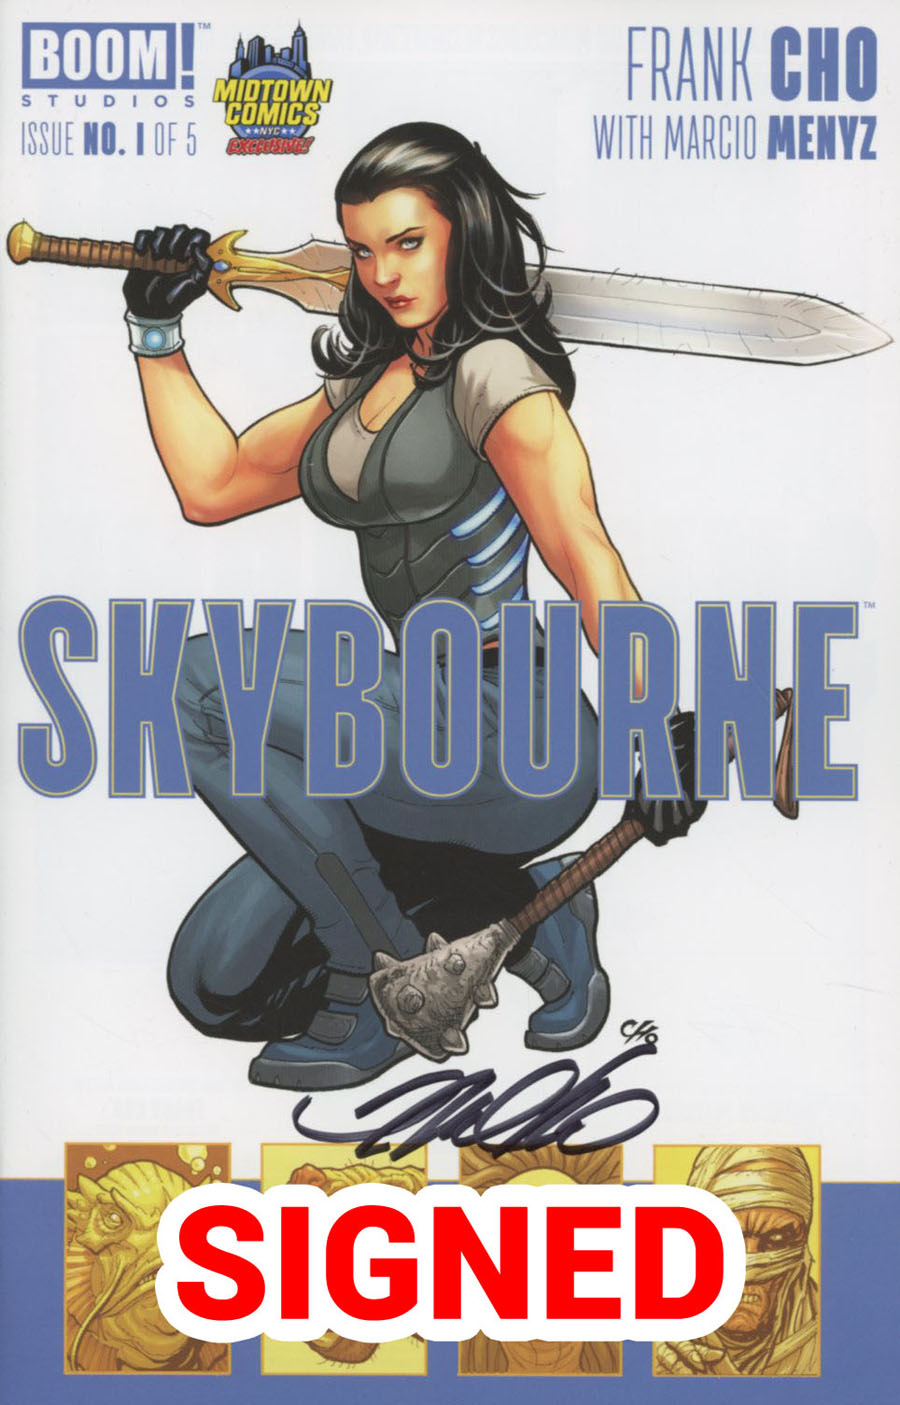 Skybourne #1 Cover E Midtown Exclusive Frank Cho Variant Cover Signed By Frank Cho